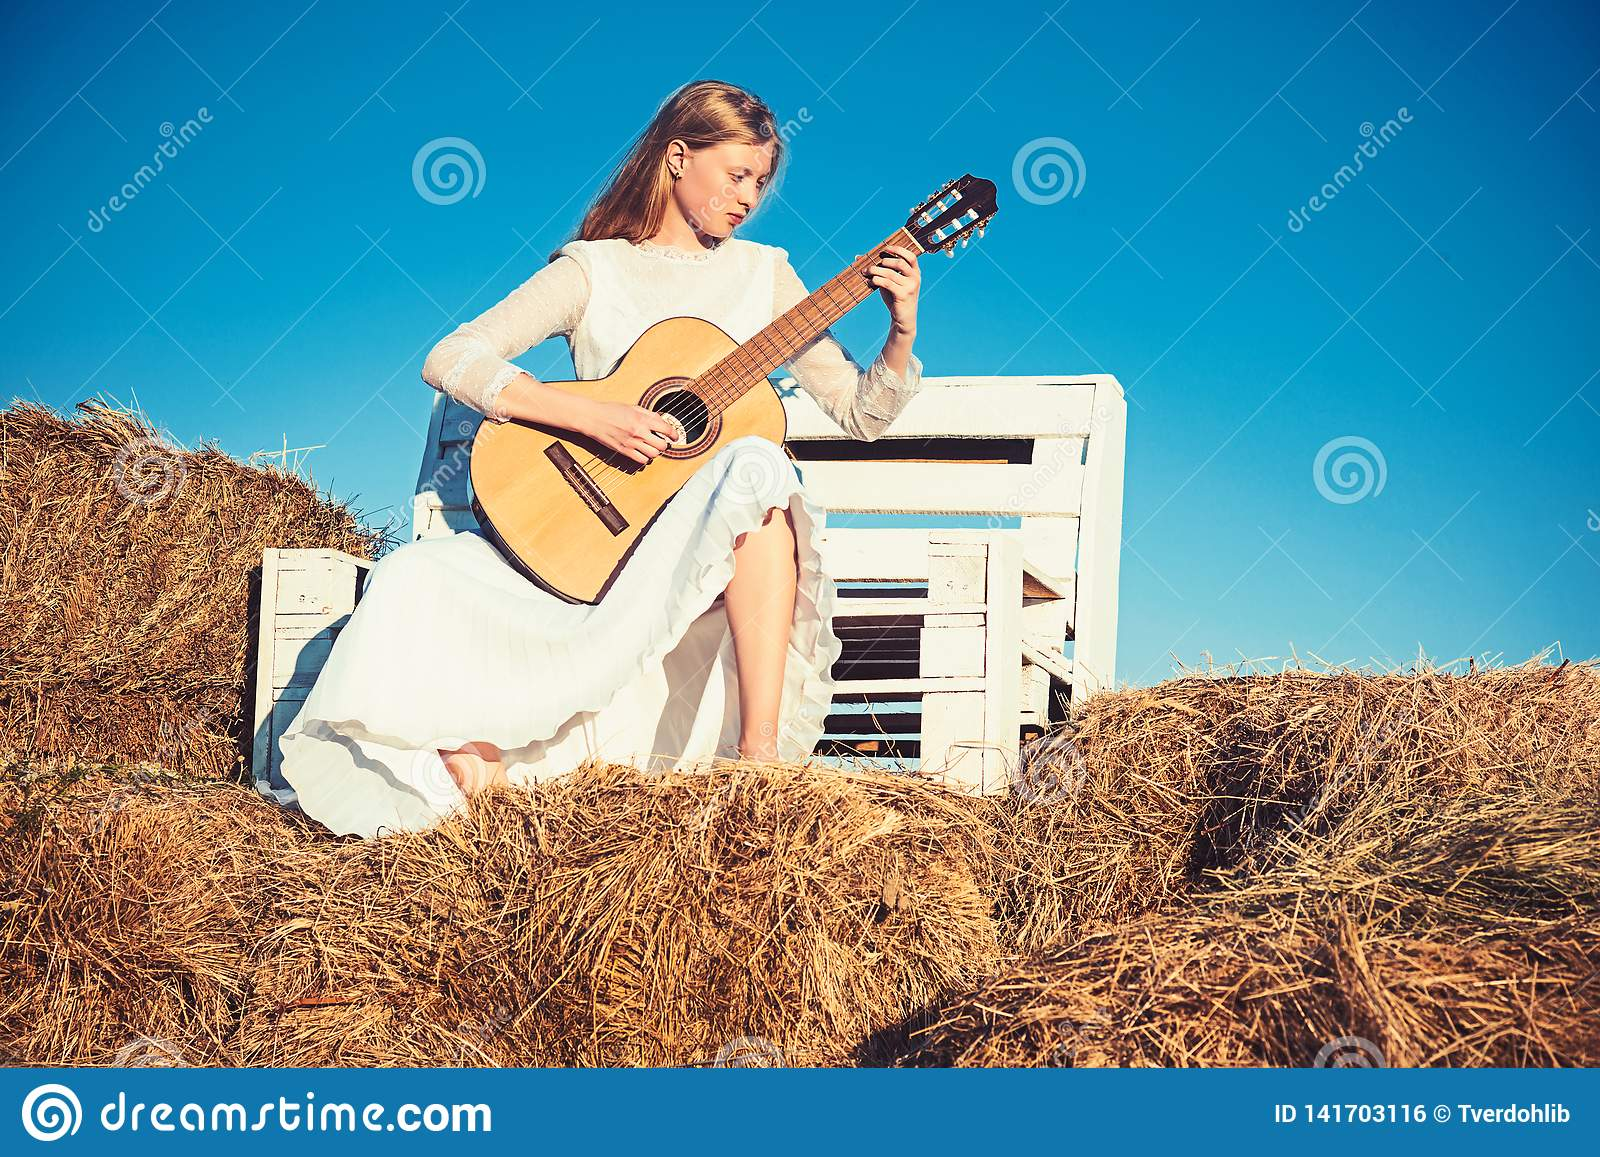 Fashion musician in white dress on sunny nature. Woman guitarist perform music concert. Albino girl hold acoustic guitar